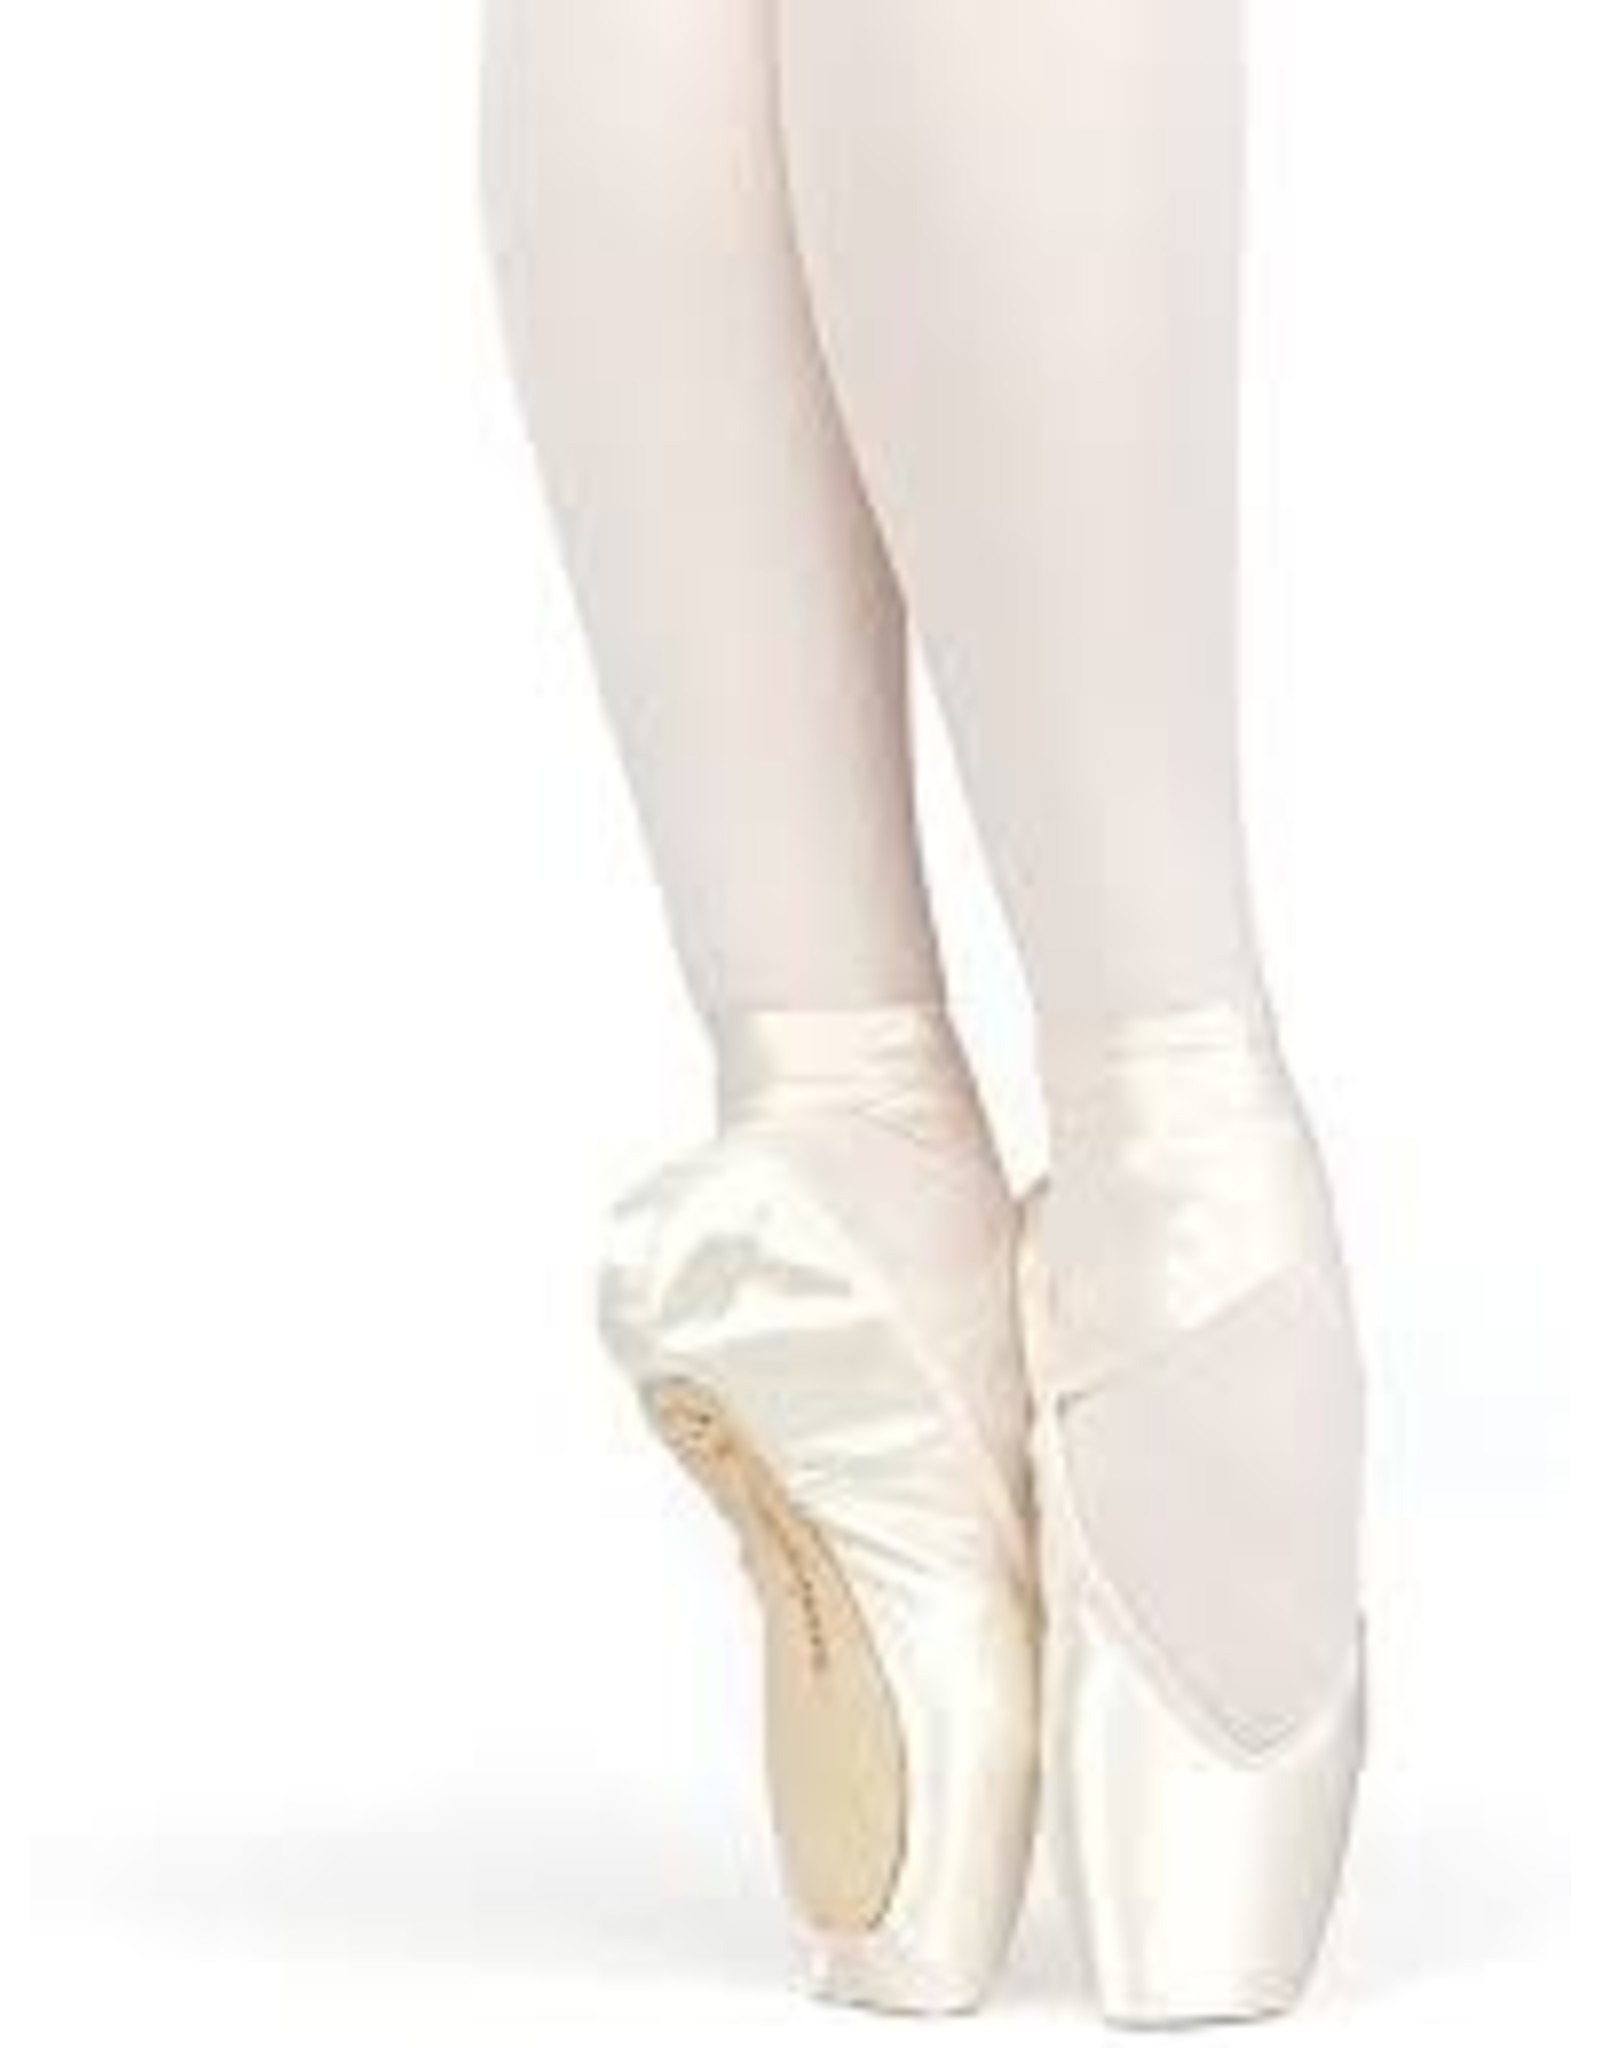 Russian Pointe Russian Pointe Muse FH shank